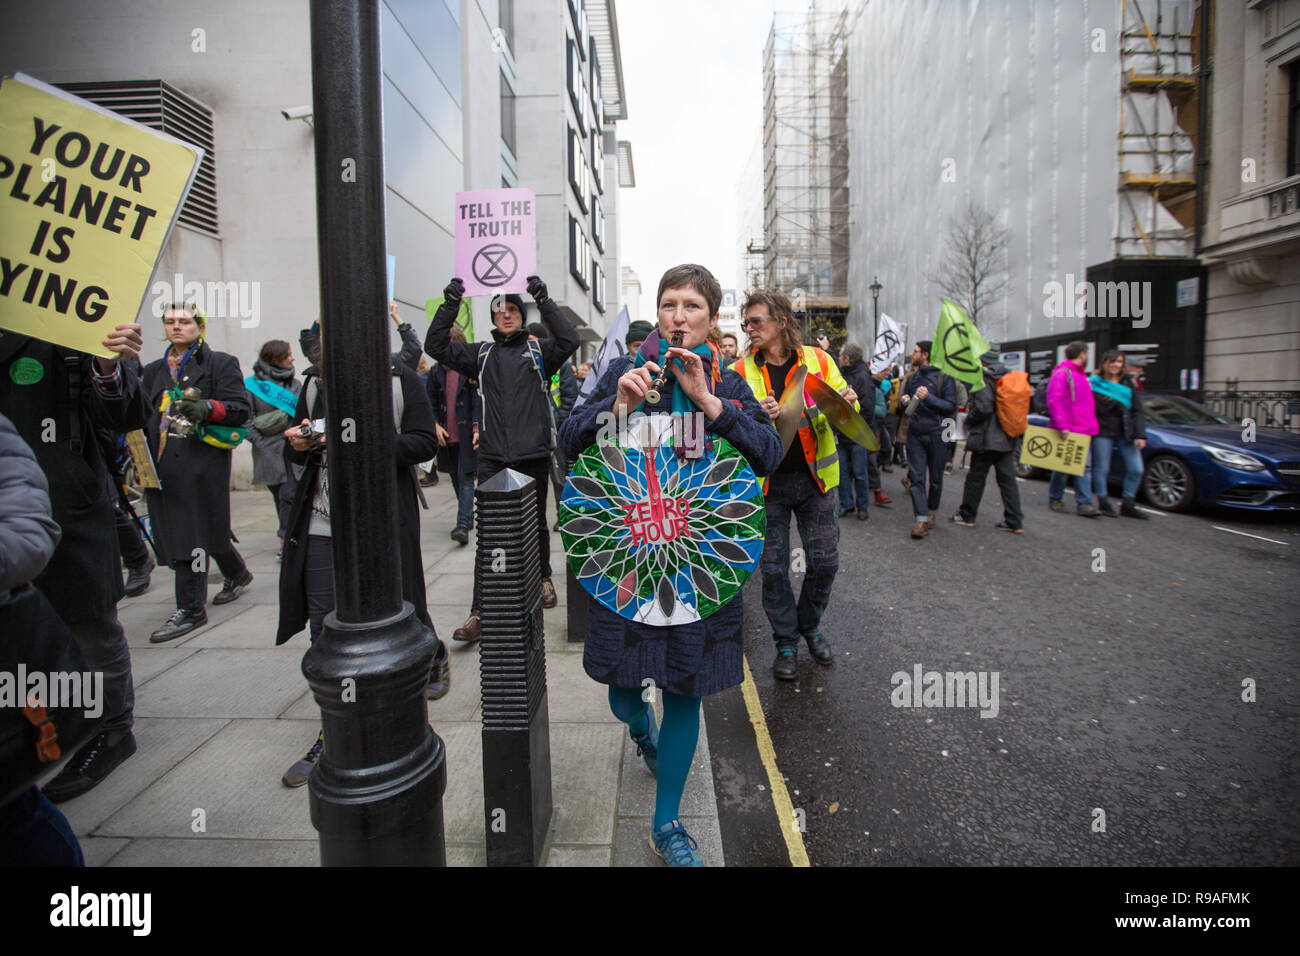 London, UK. 21st December, 2018. Extinction Rebbelion protest about climate change and the way it is portrayed in the media Credit: George Cracknell Wright/Alamy Live News Stock Photo